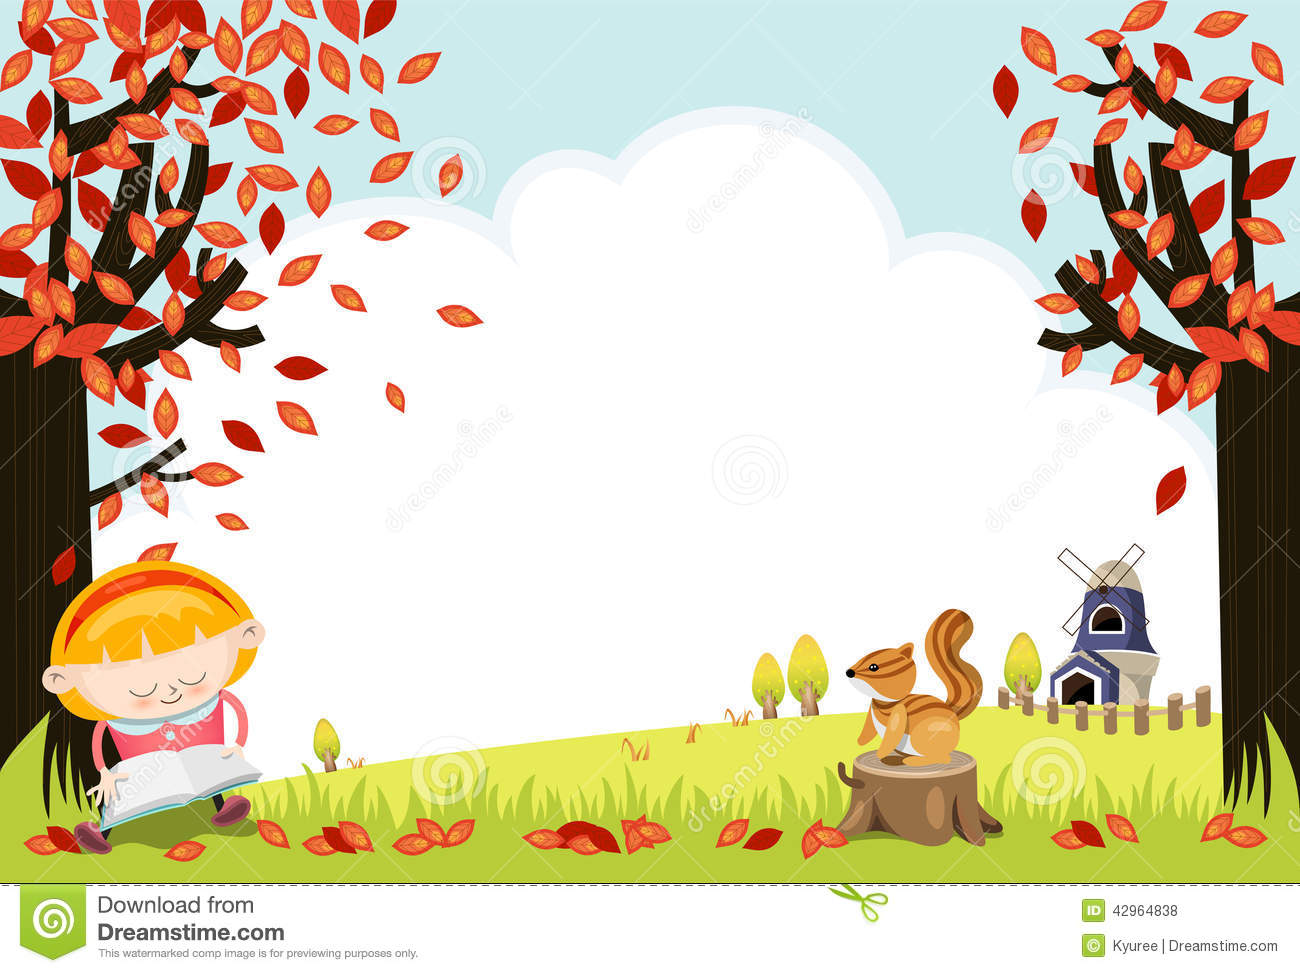 Autumn field frame stock illustration. Illustration of ...